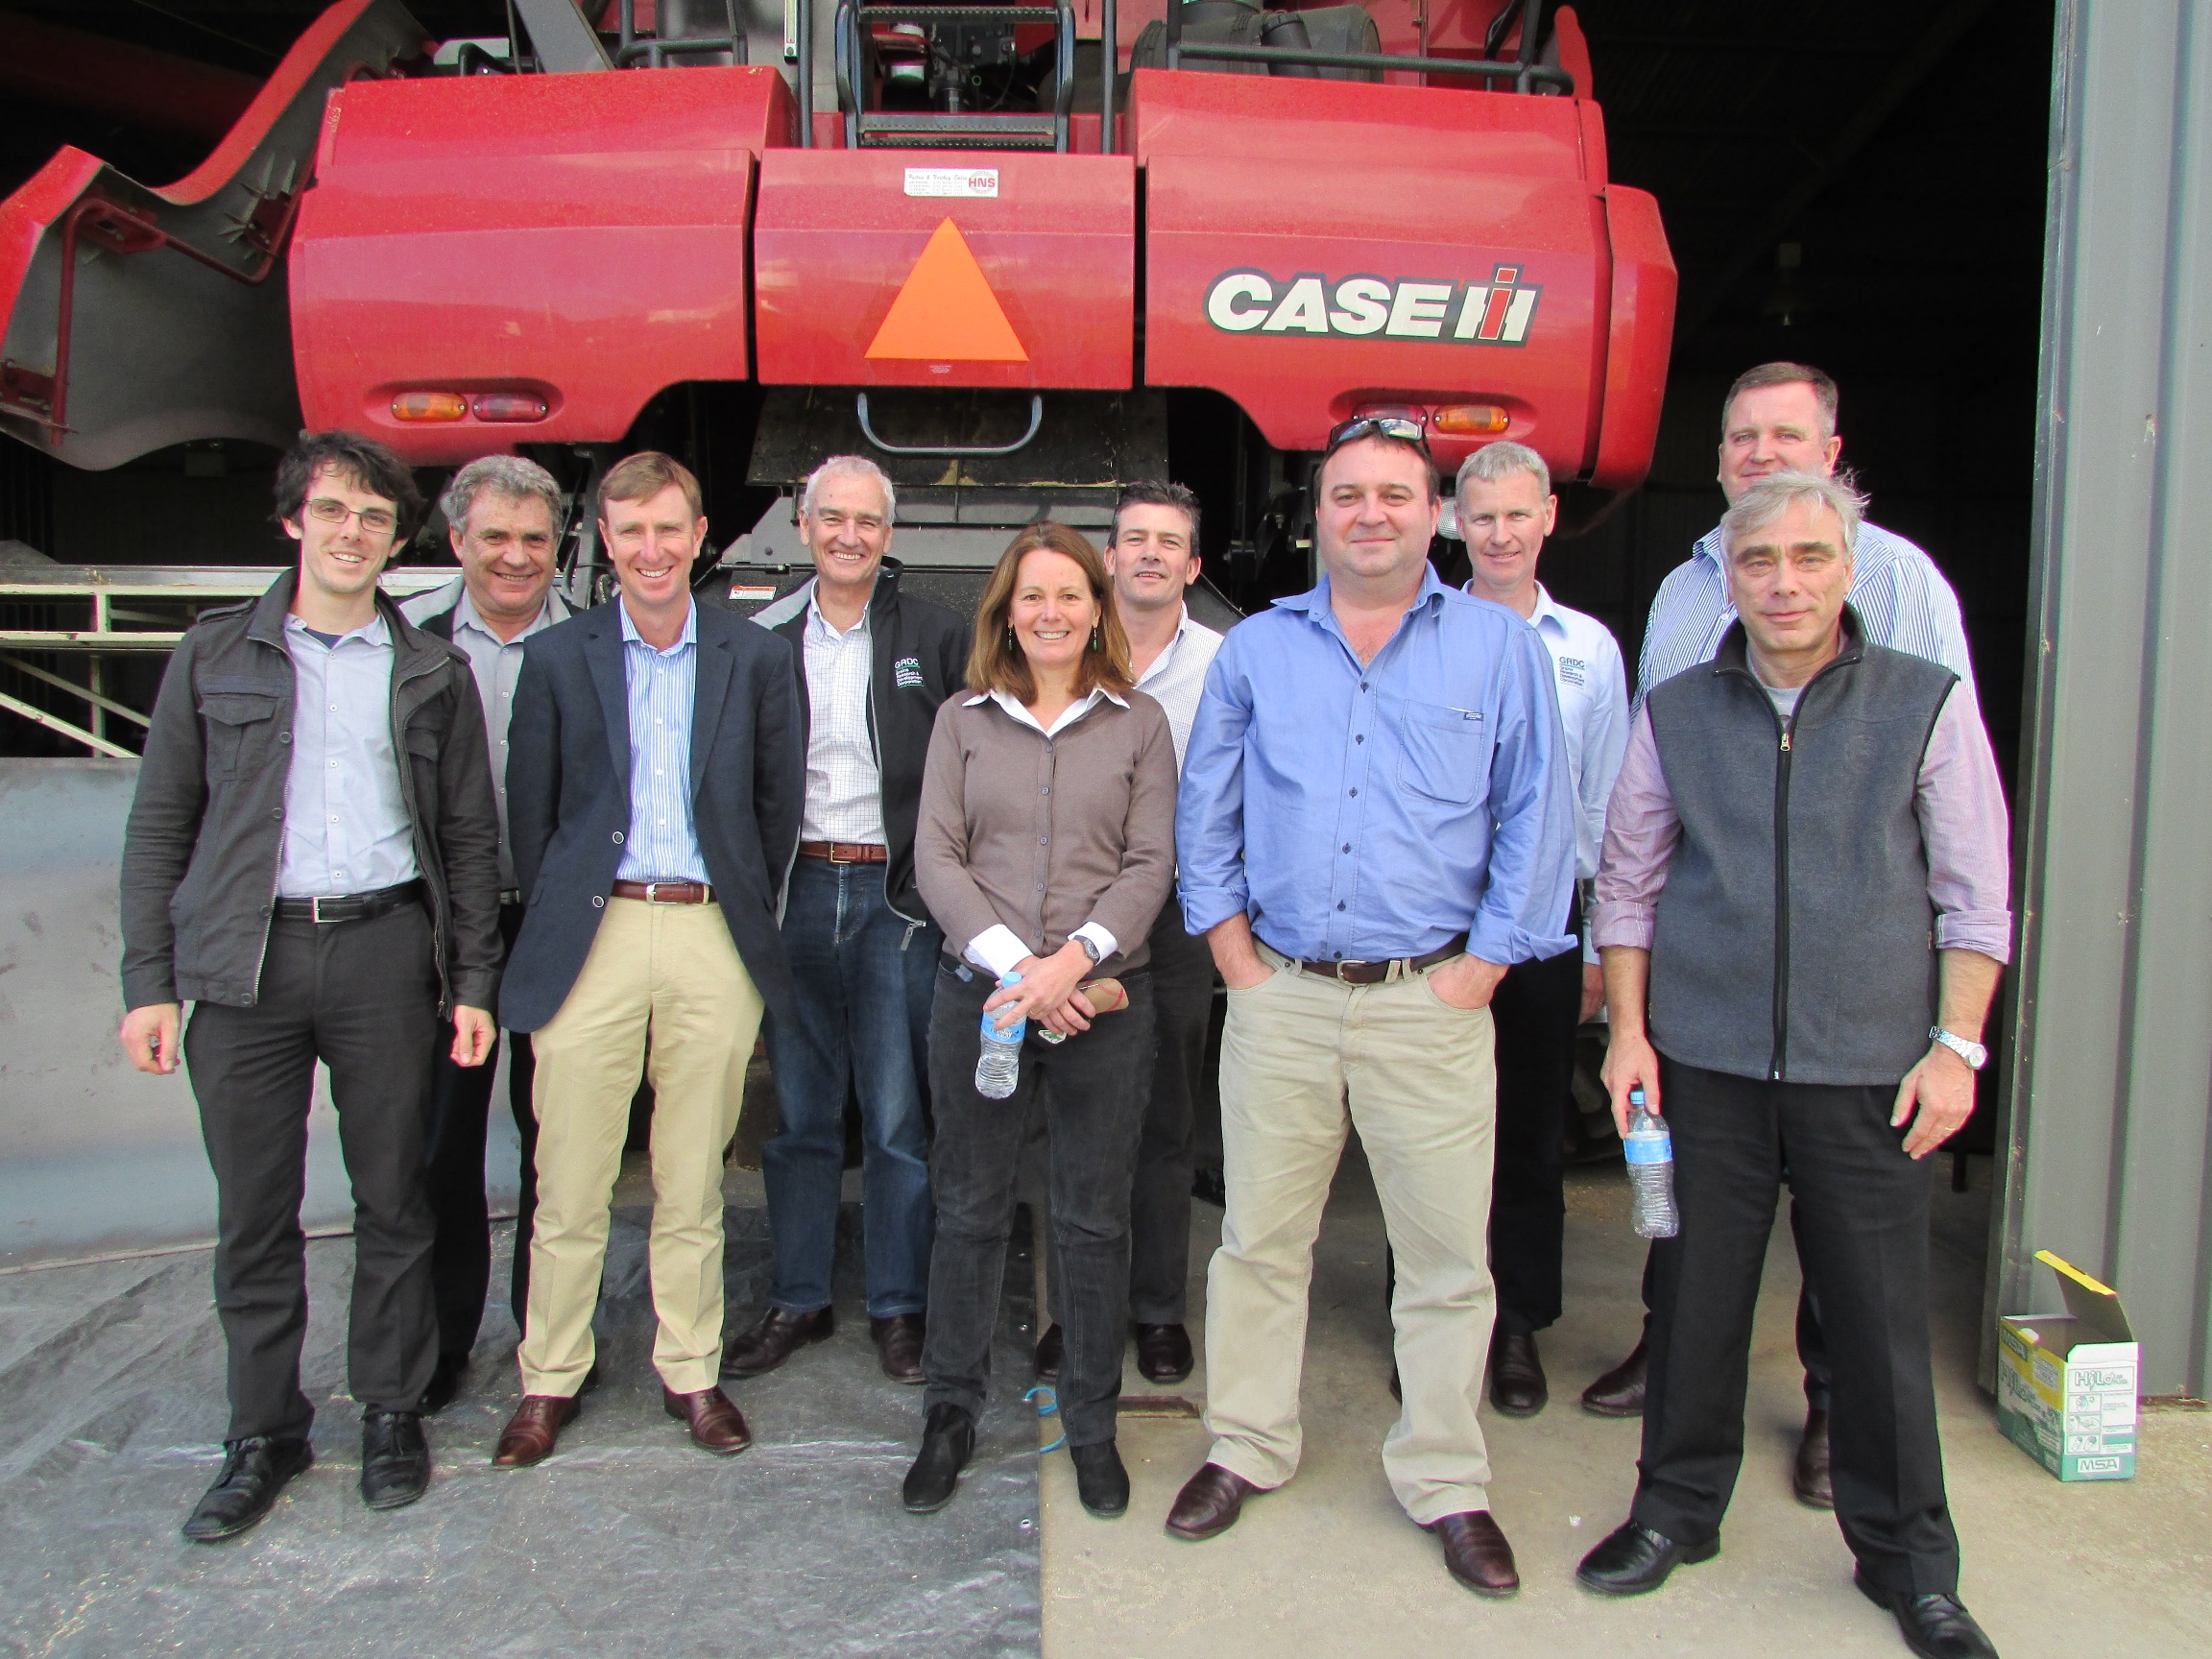 Members of the GRDC National Panel tour group at the University of SA's Mawson Lakes campus where the first generation of an integrated seed destructor mechanism for harvest weed seed control was demonstrated.